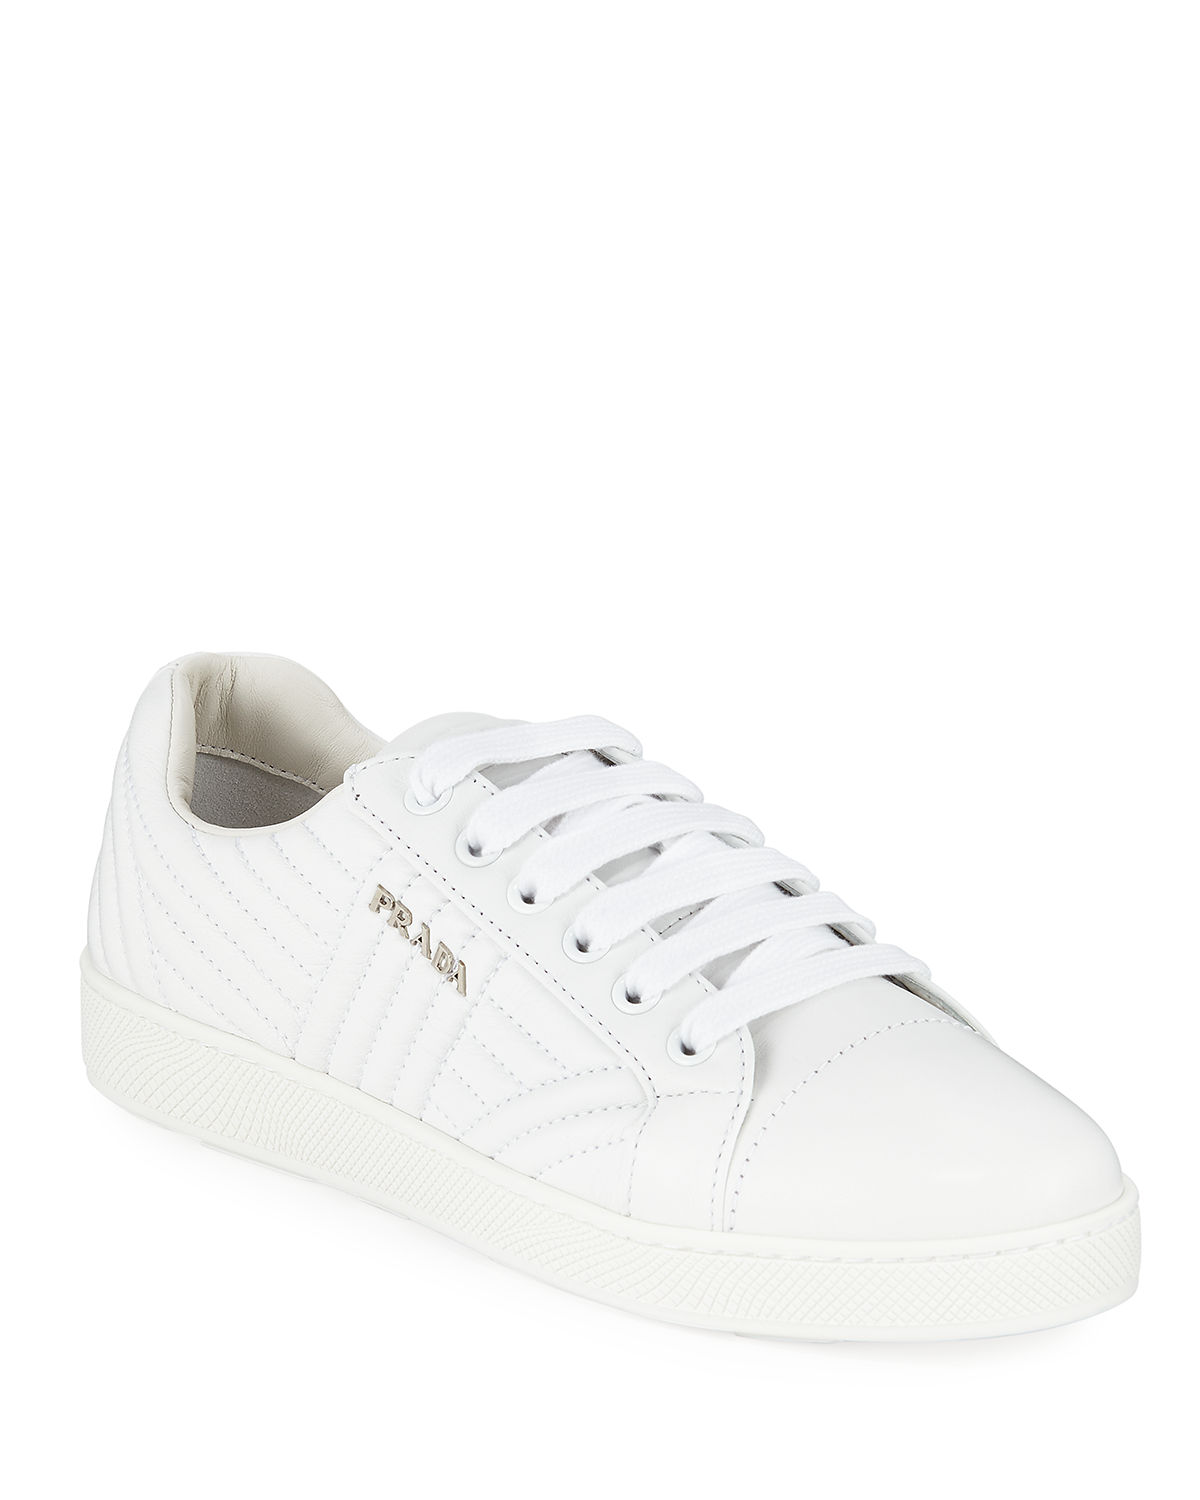 2cf05d0fd485 Prada Stitched Leather Low-Top Sneakers